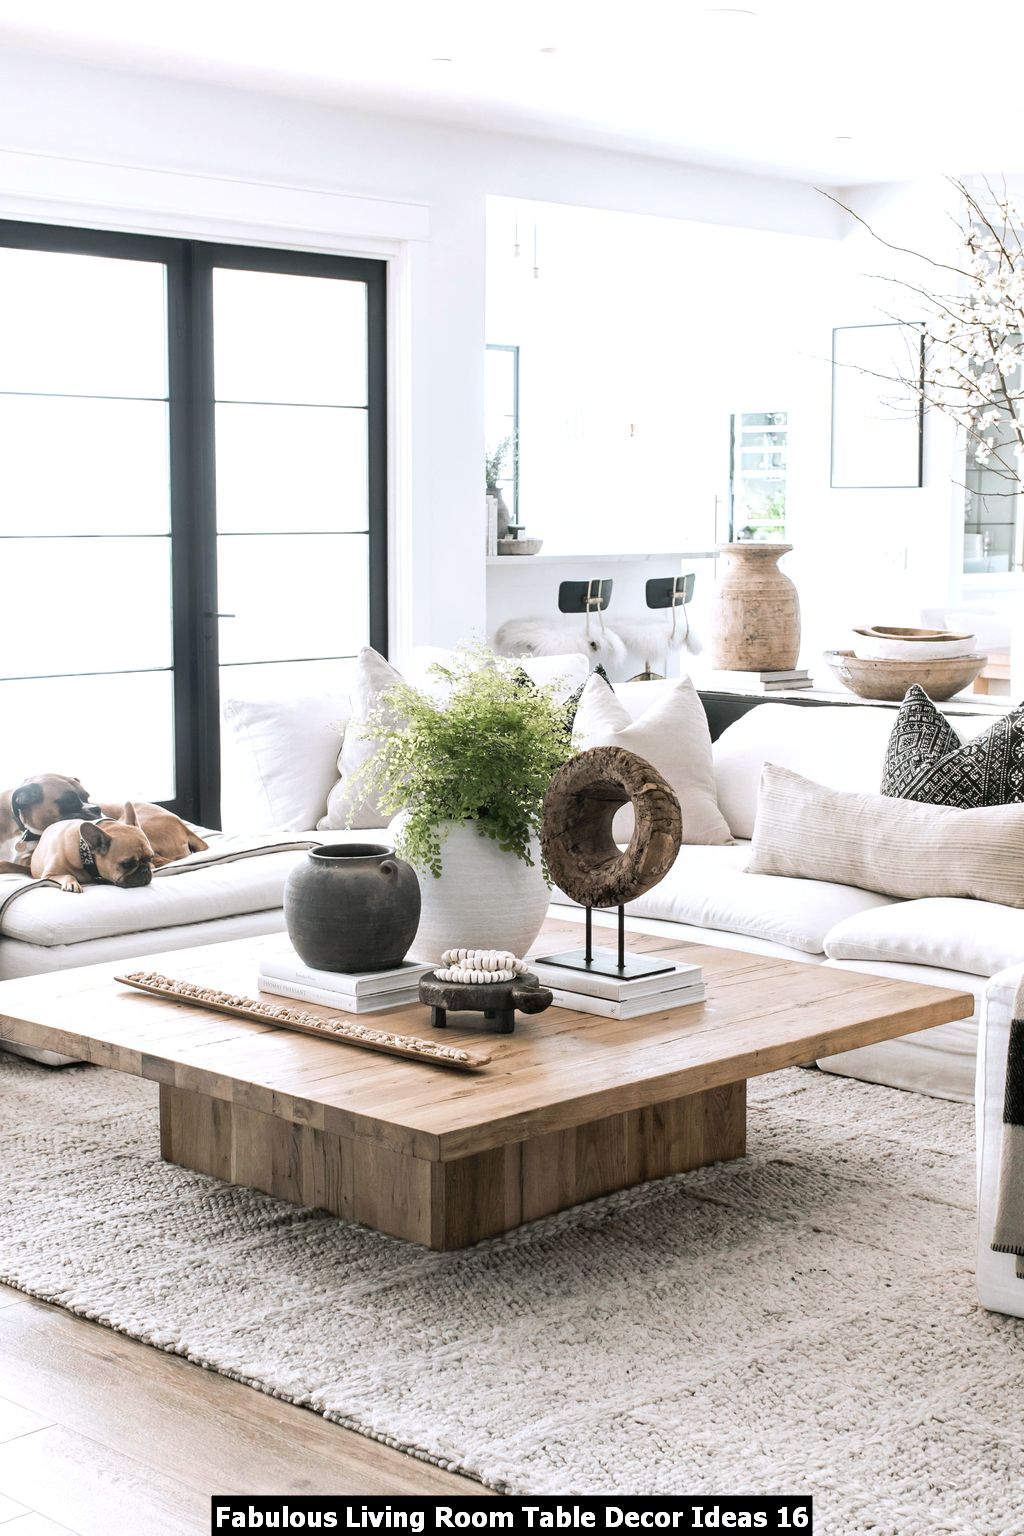 Fabulous Living Room Table Decor Ideas 16